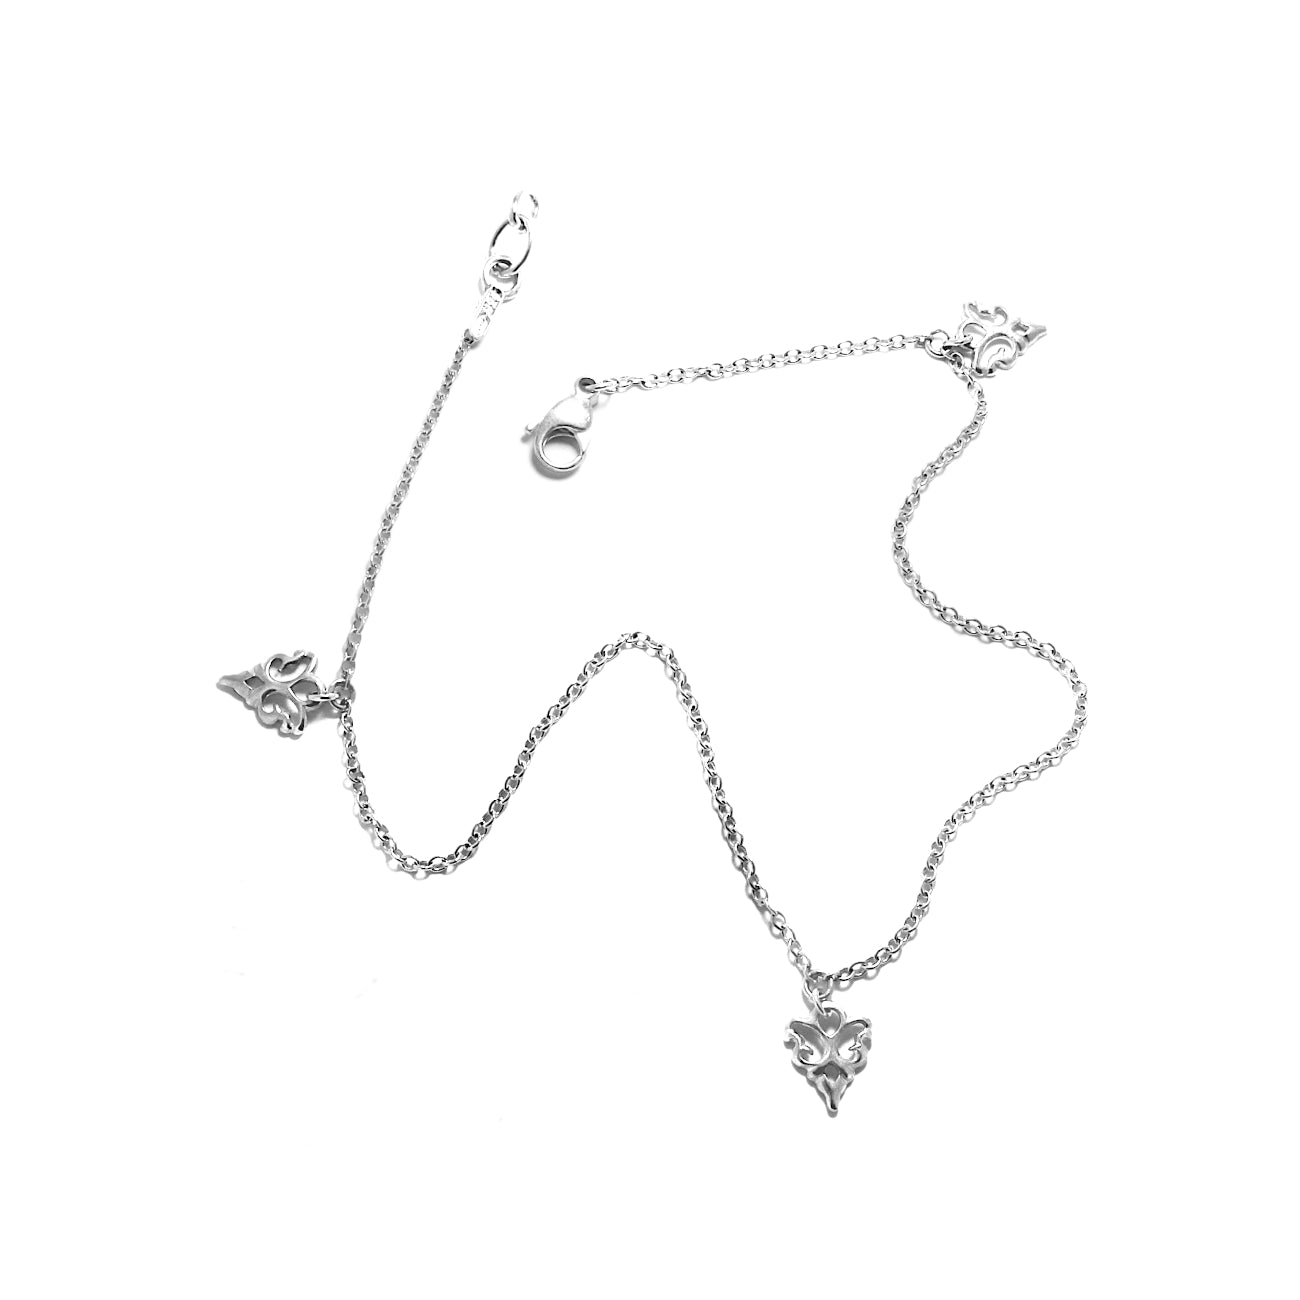 Sterling Silver Anklet Chain